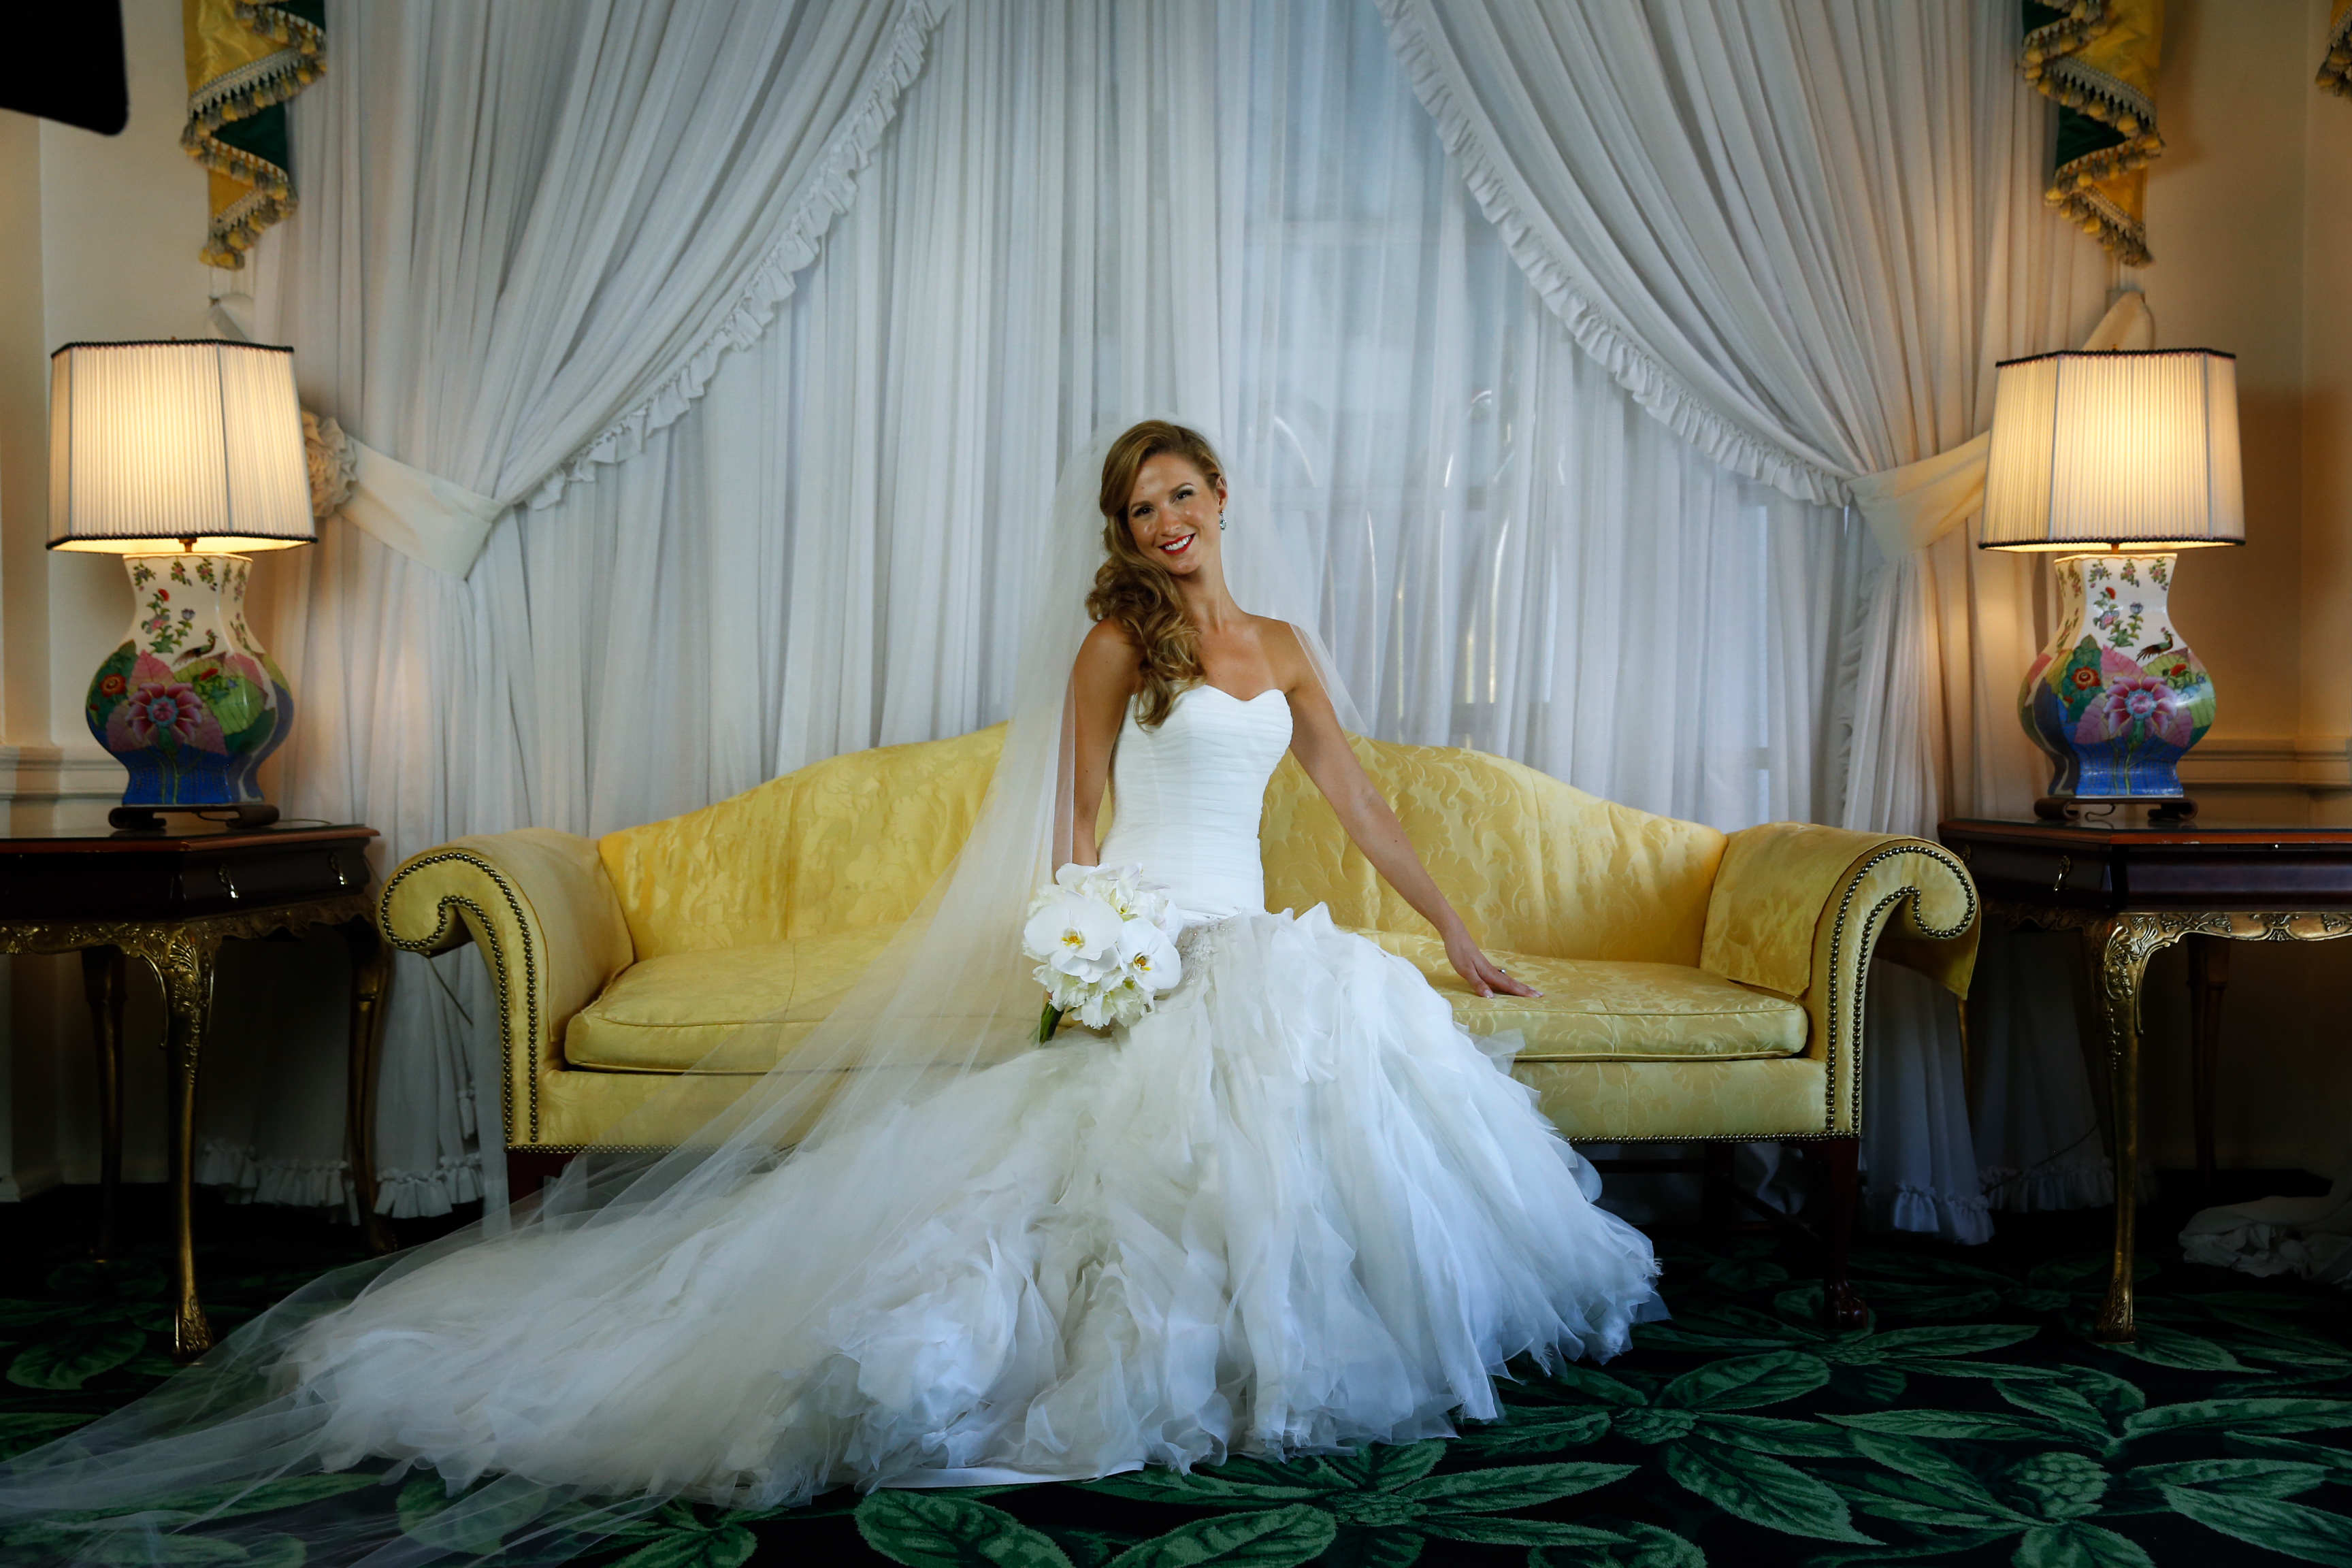 Looking fantastic for her bridal portraits at The Greenbrier